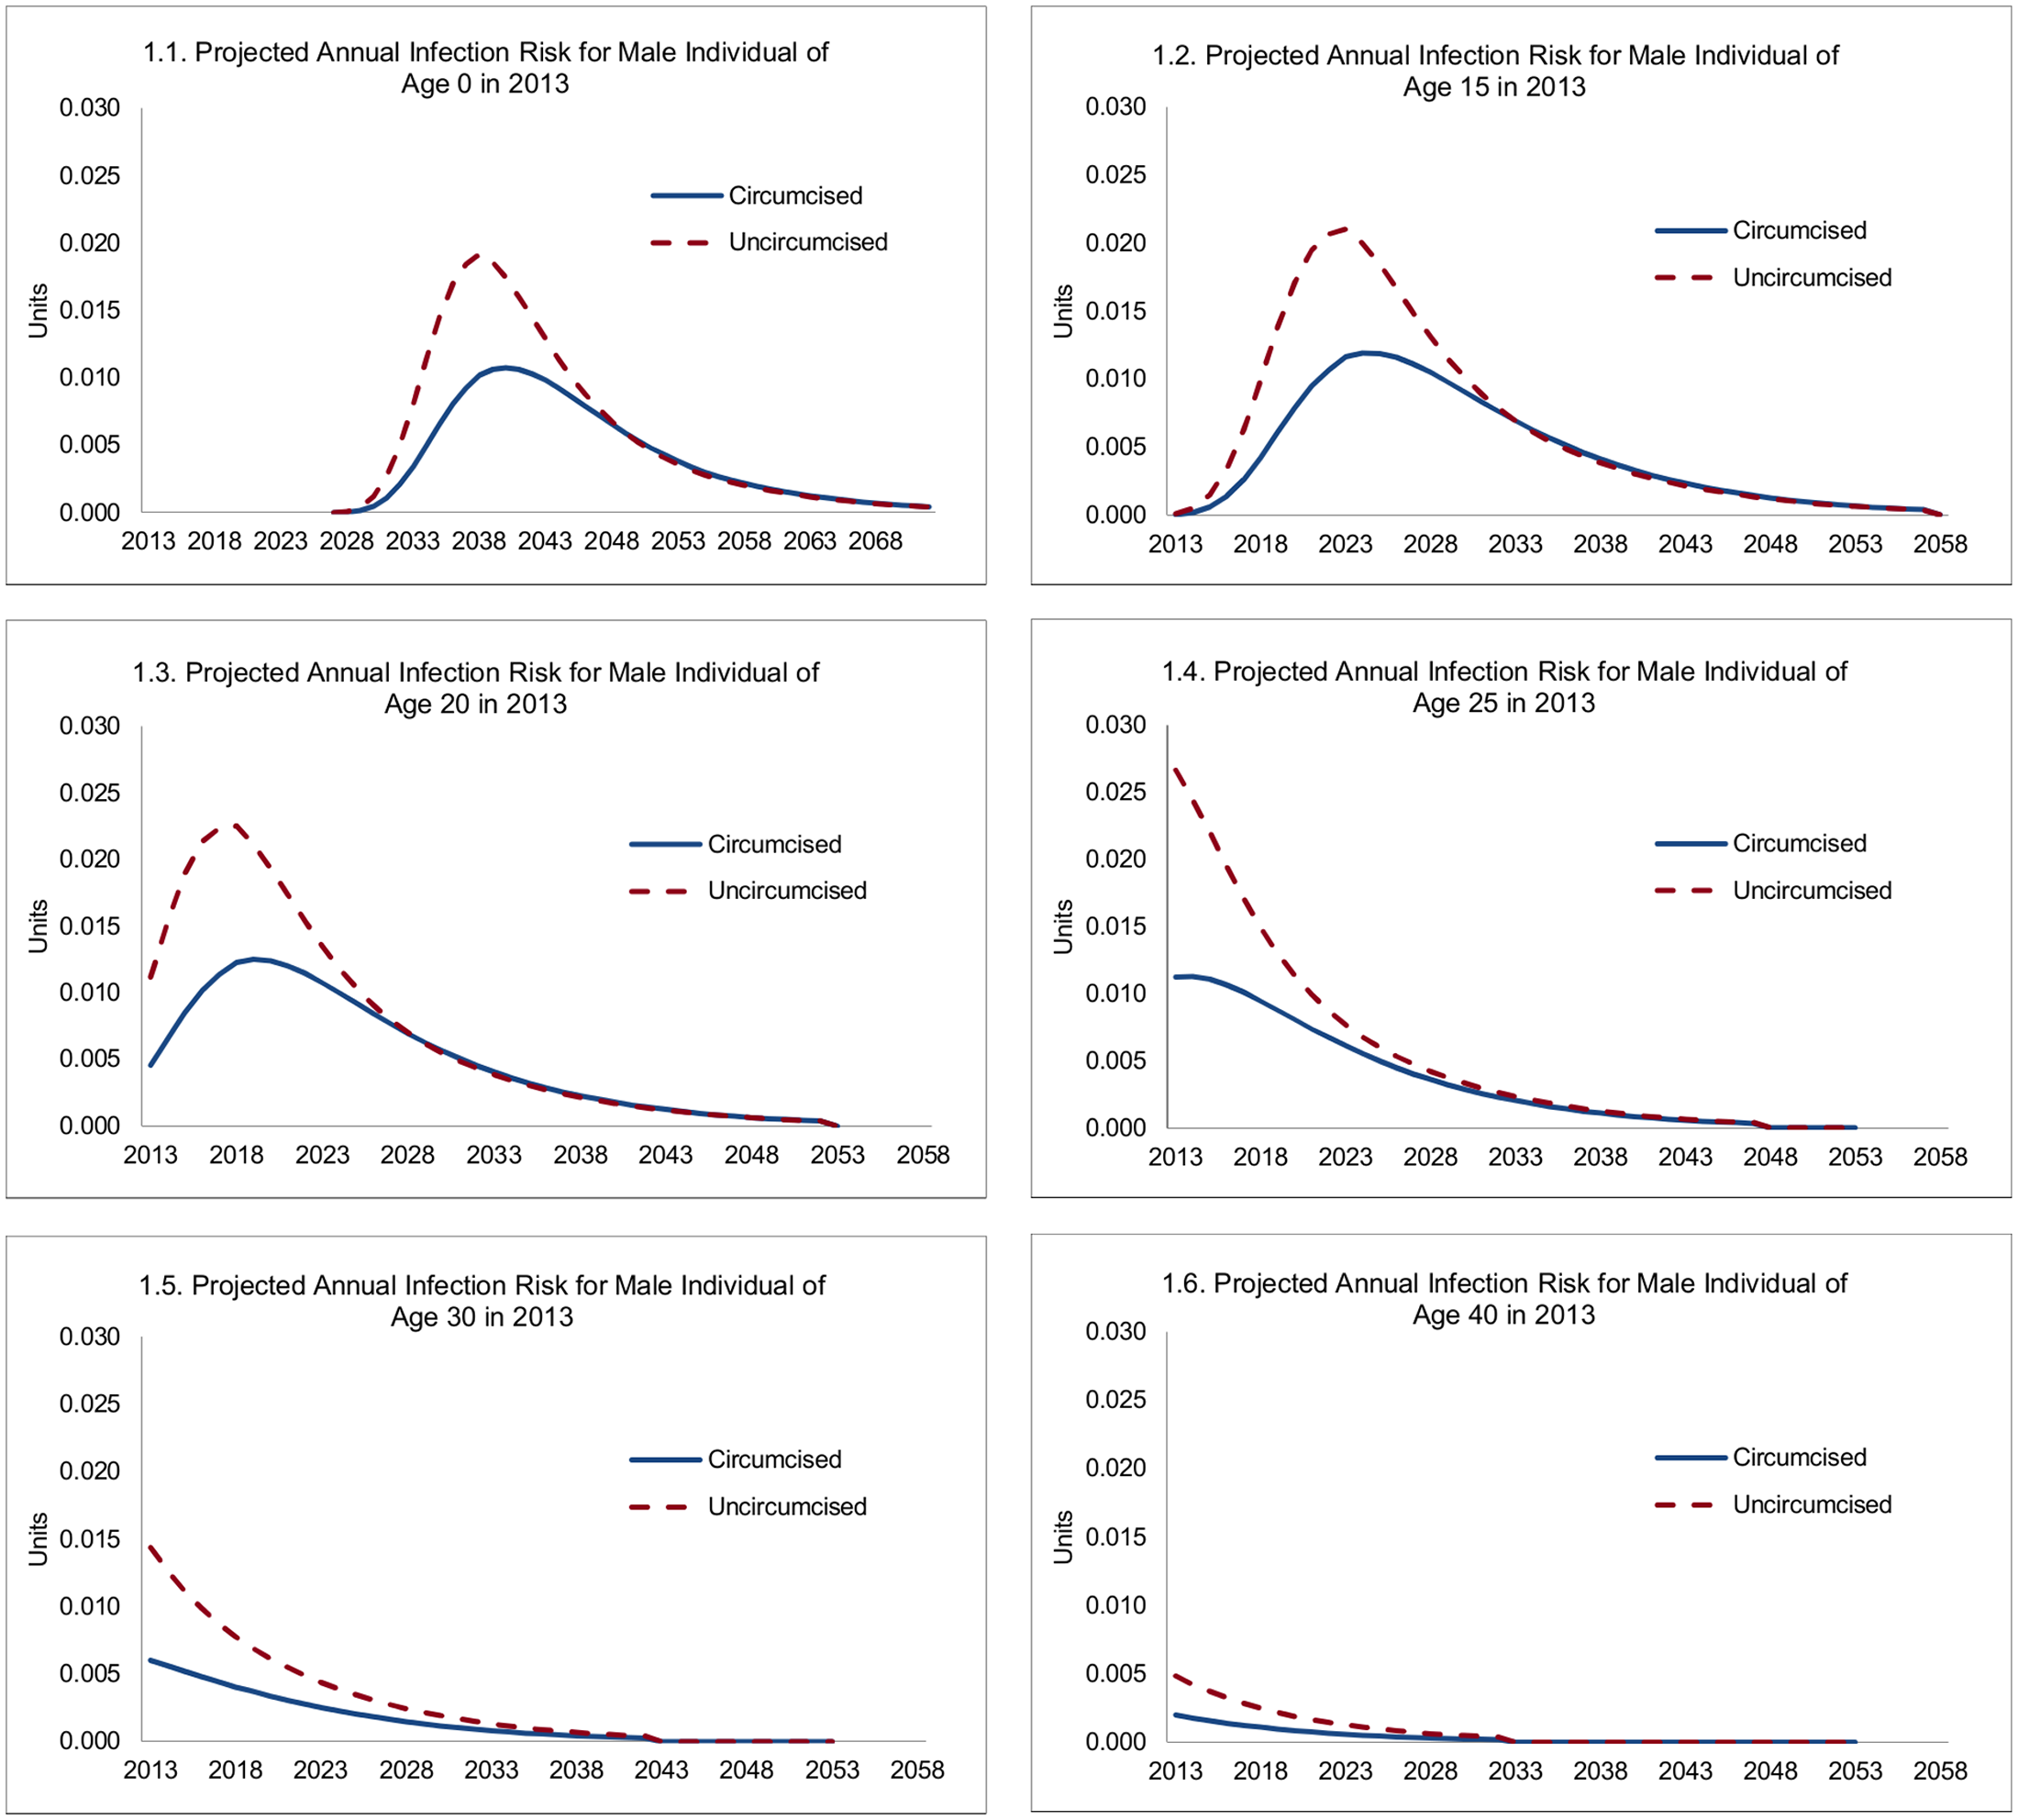 Projected annual infection risk for male individual, by age.